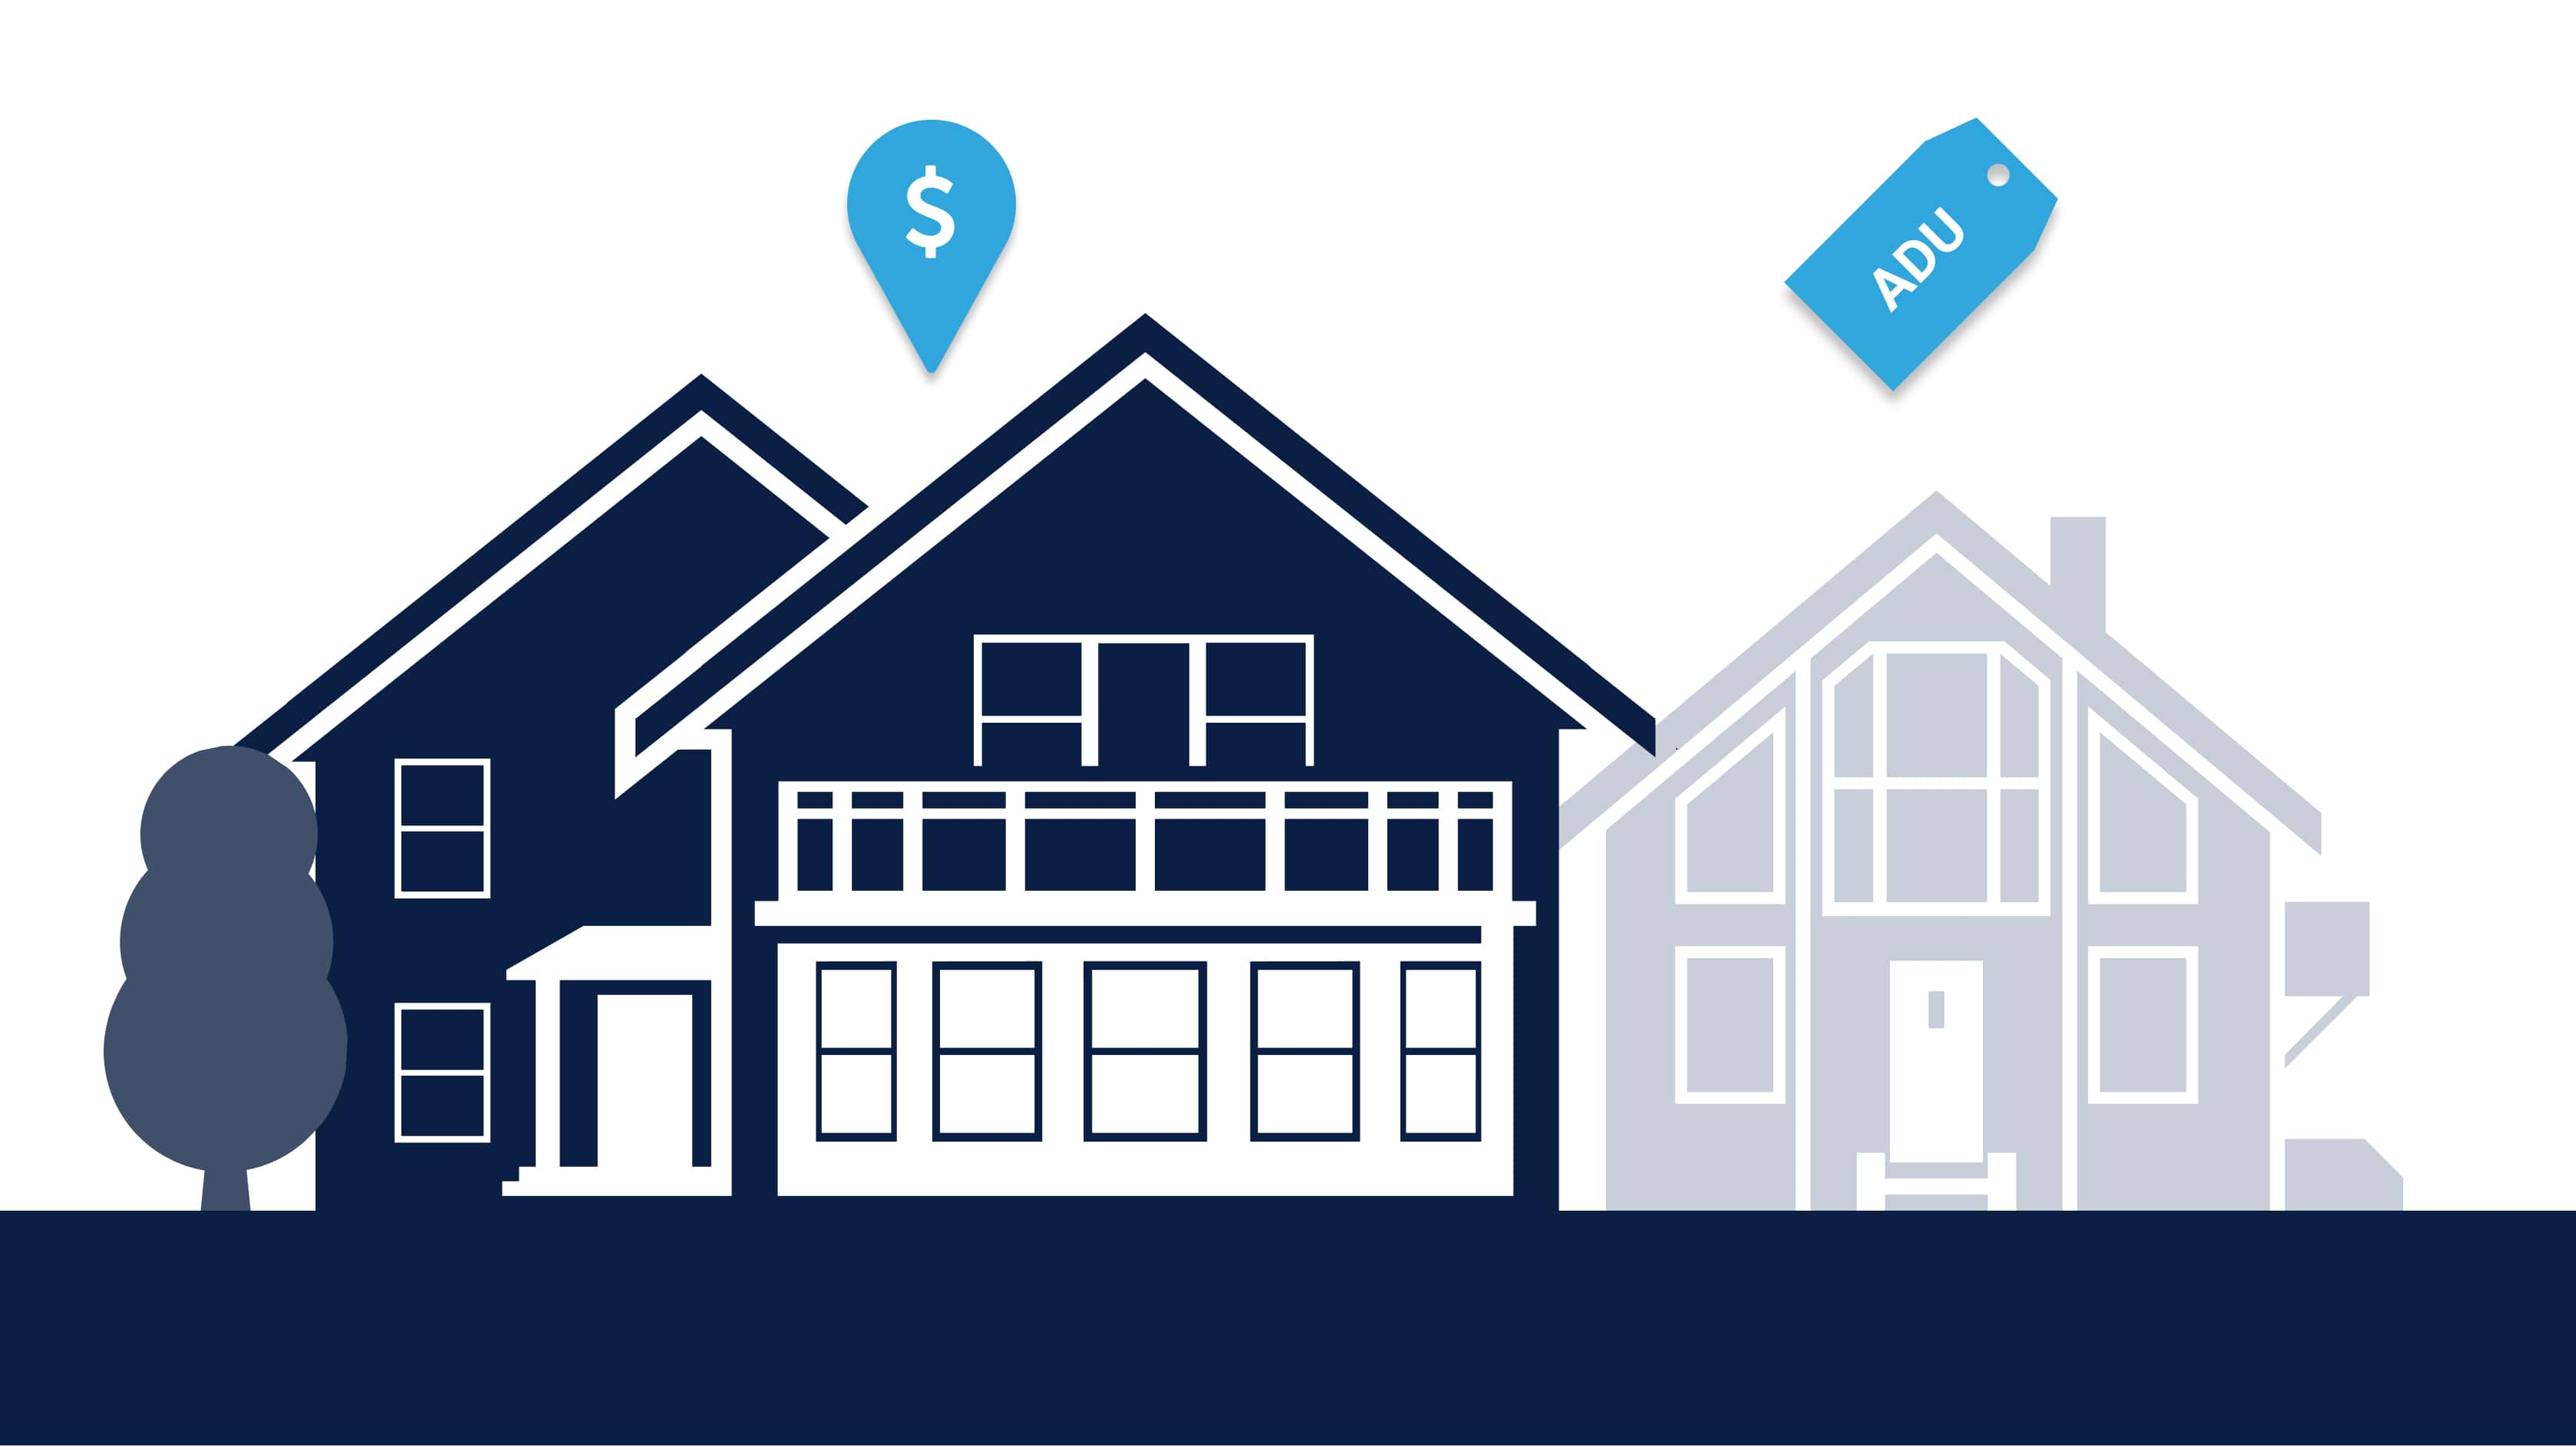 If you're not including Accessory Dwelling Units (ADUs) as part of your real estate investment strategy, you may be missing a golden opportunity. Generate additional monthly income while also adding to your property's resale value.